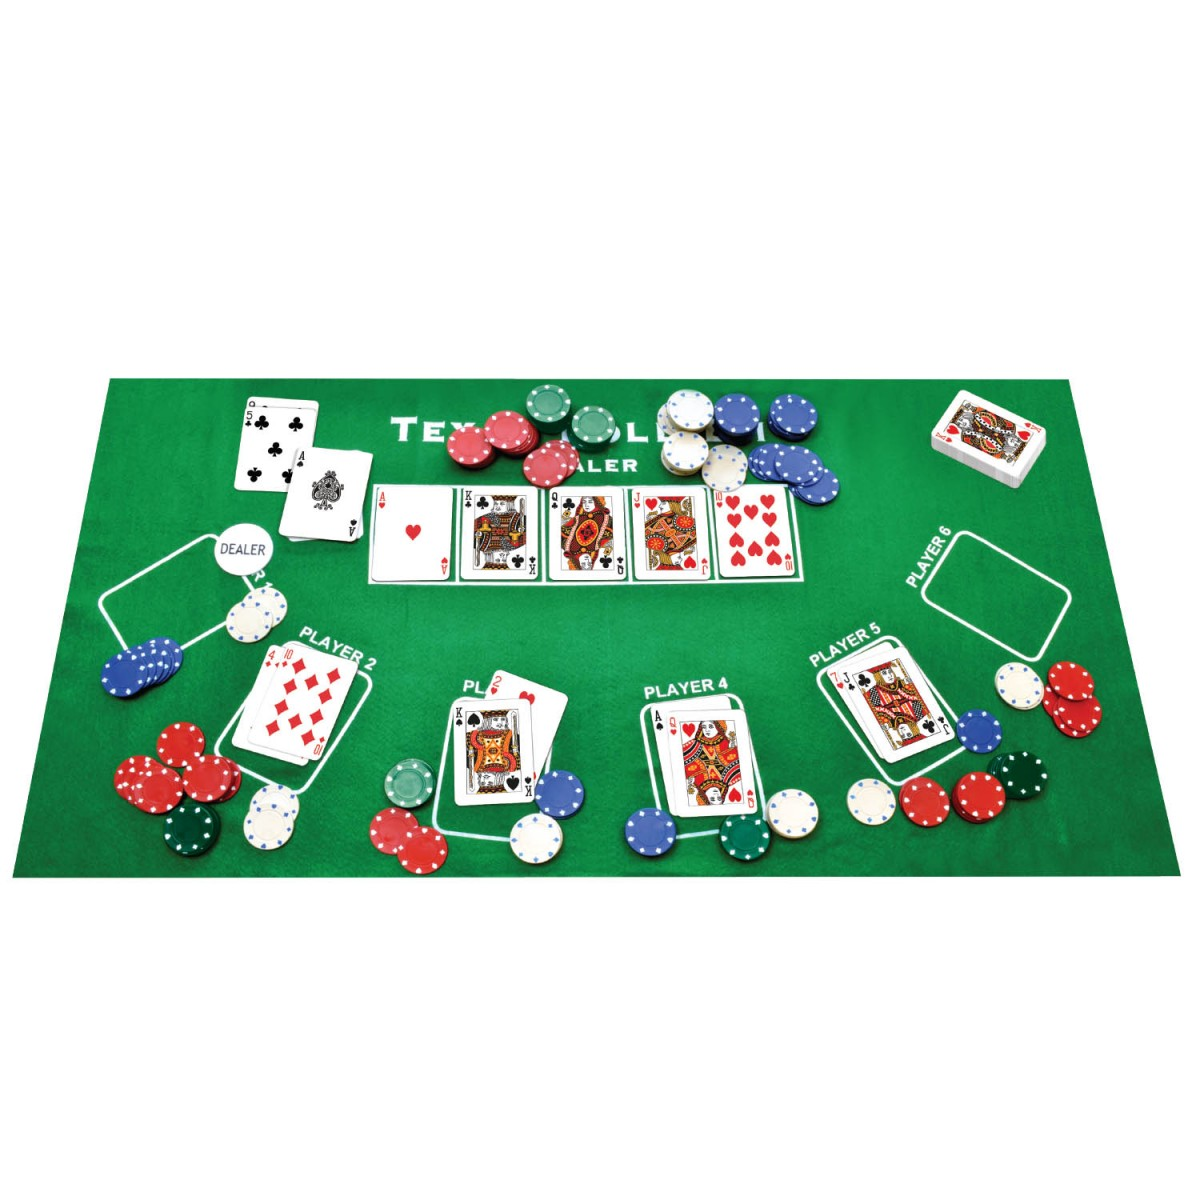 Best hands in poker in order